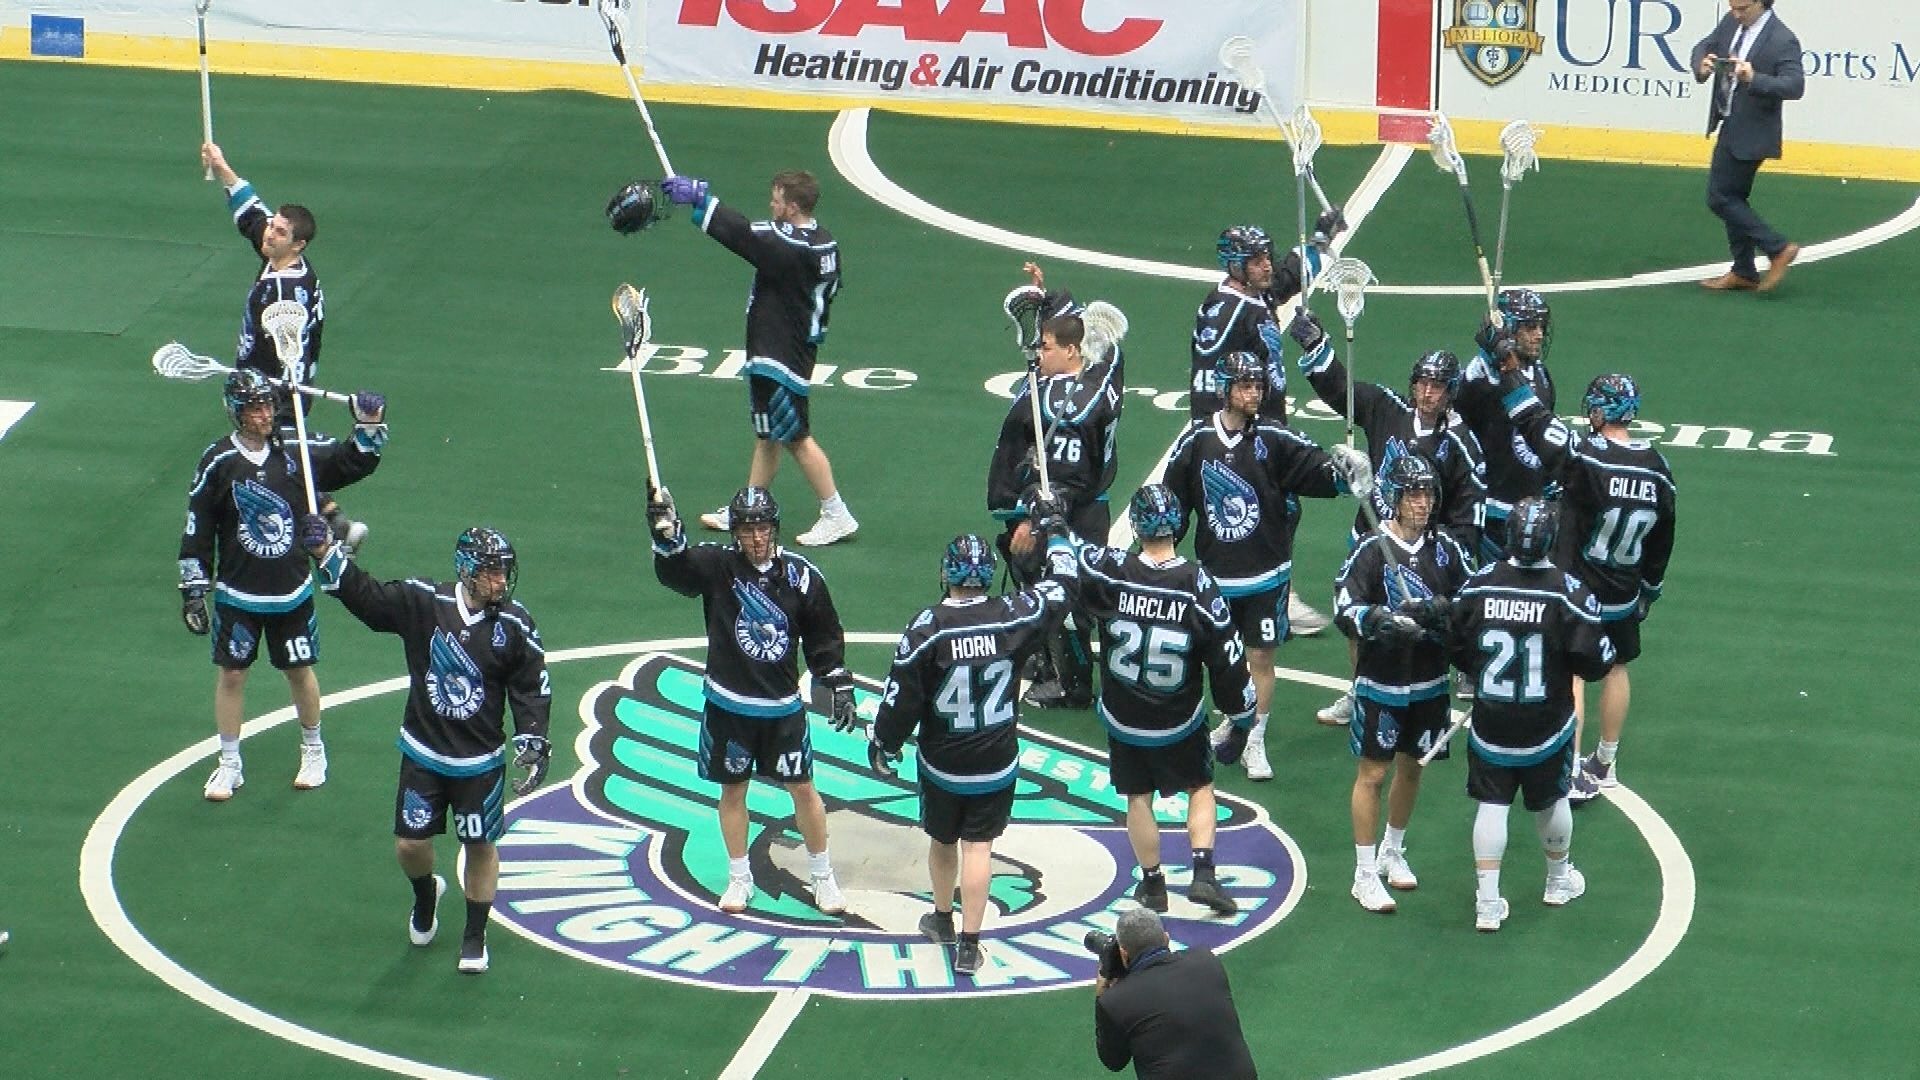 Knighthawks fall 14-12 in final game before move to Halifax